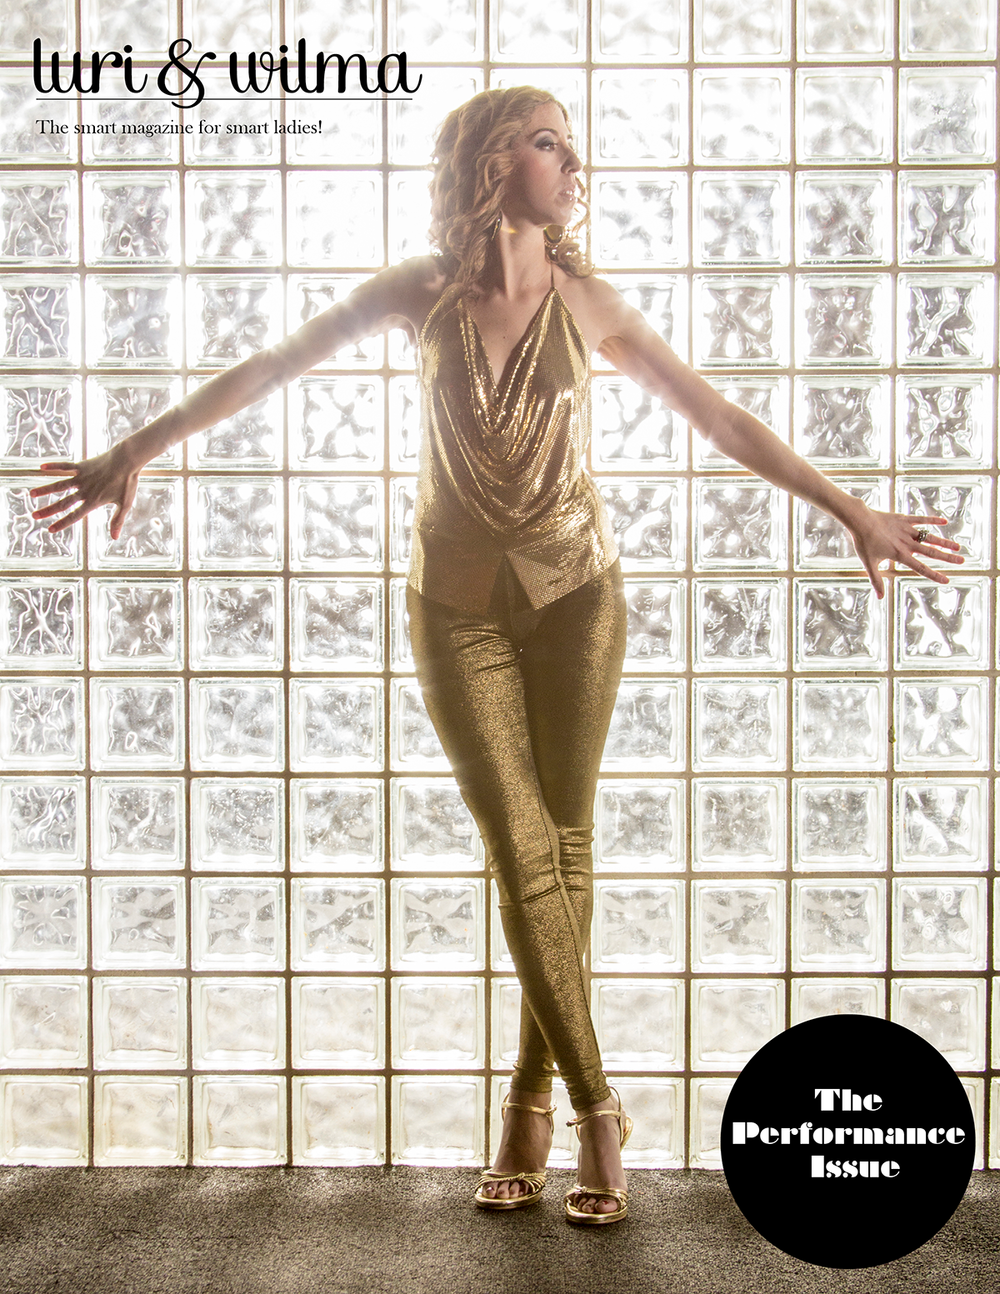 Dig on the fab ladies who perform? This issue is full of them!Order it in print here!